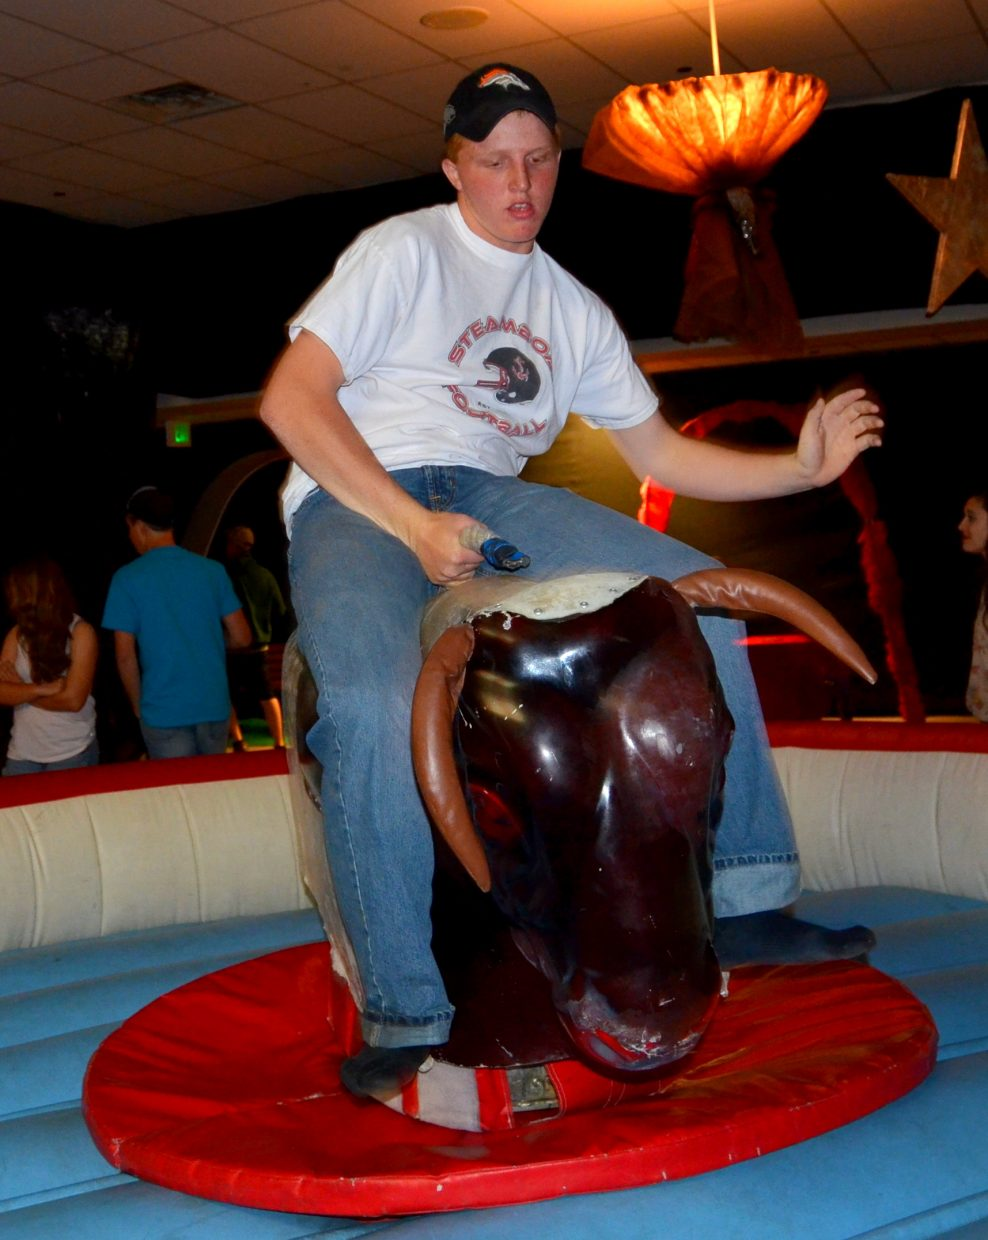 Brandon Yeager rides the bull at After Prom. The event was held starting at midnight Saturday at Steamboat Springs High School. Submitted by: Shannon Lukens